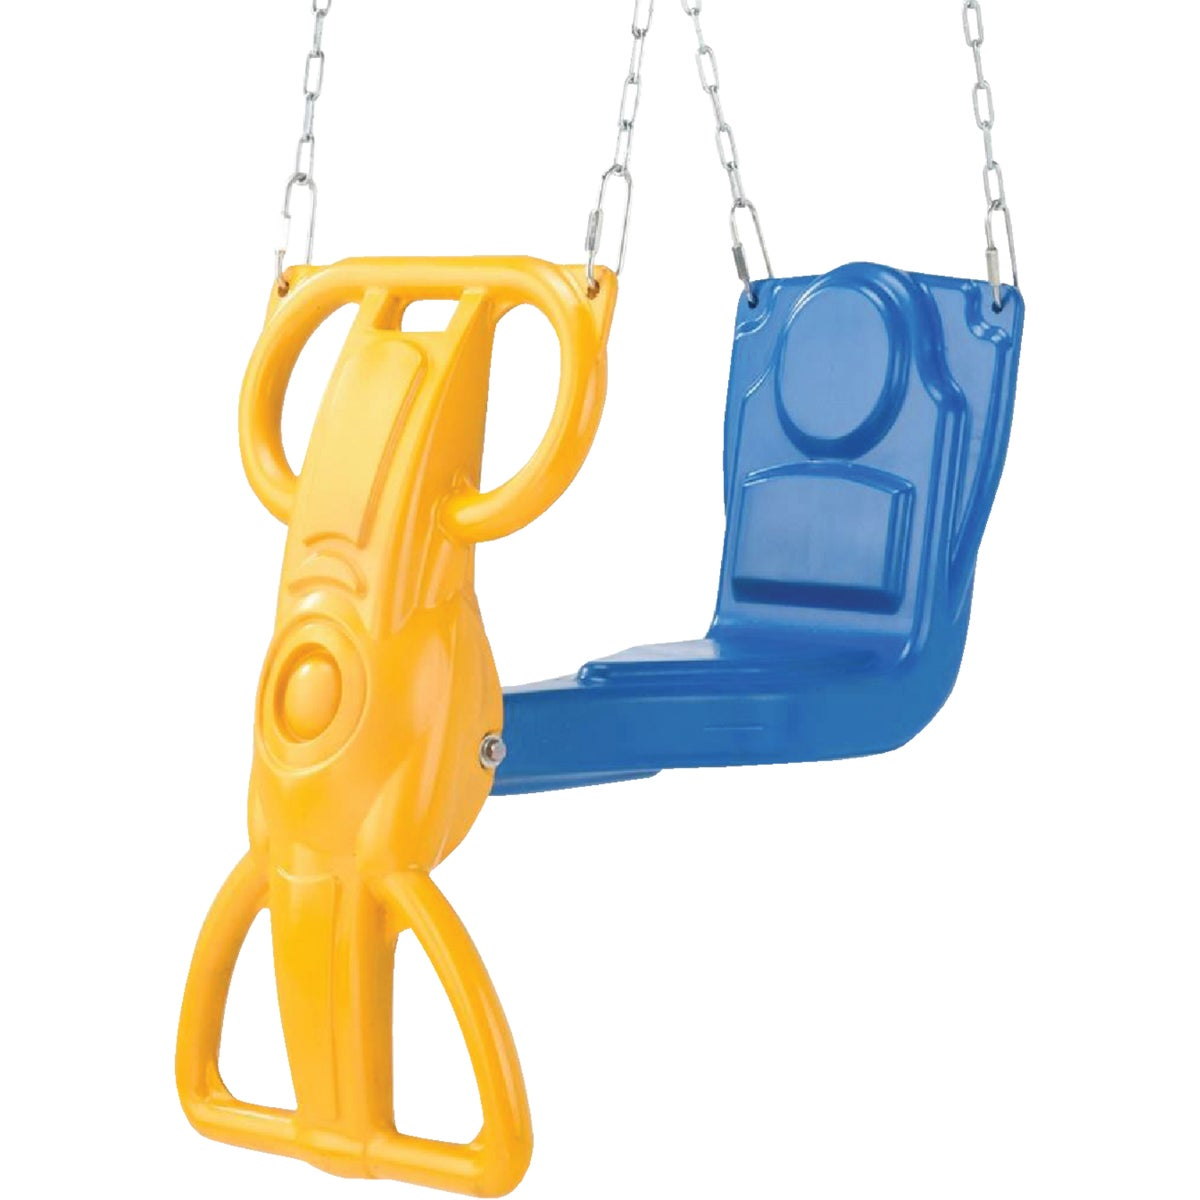 WIND RIDER SWING - NE 4693L by Swing N Slide Corp